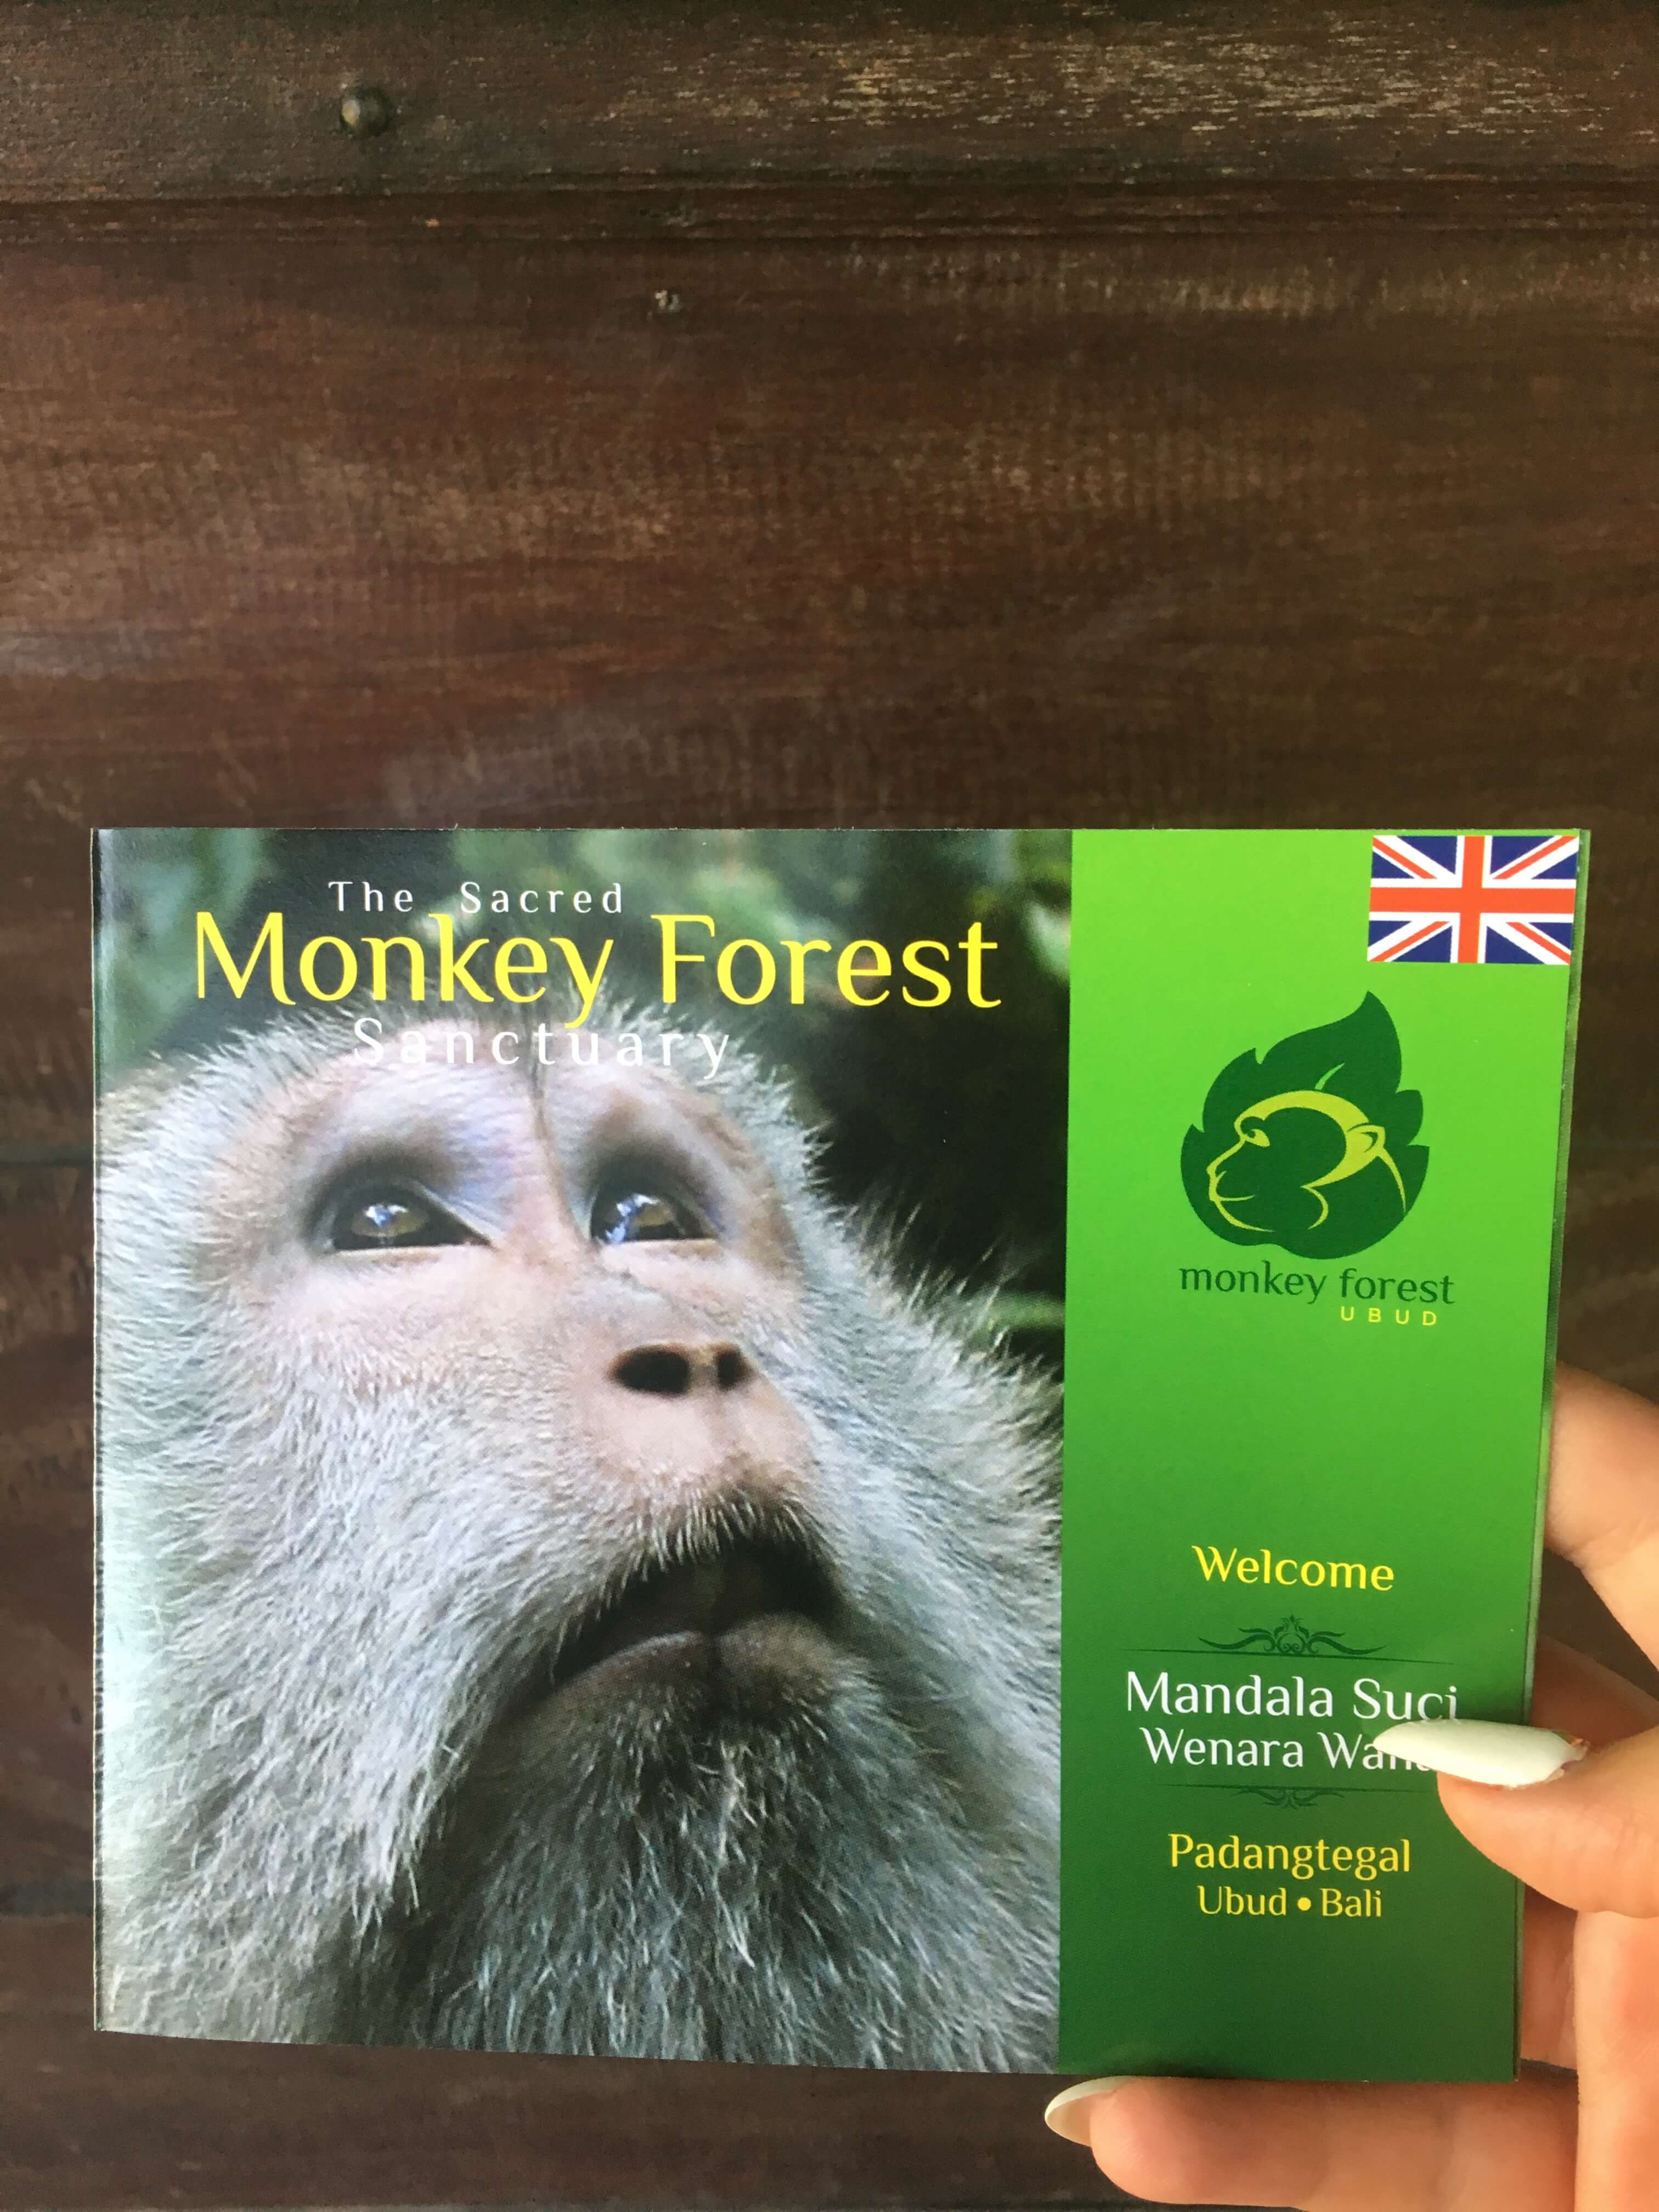 Epic Travel Fails Part 1 - The One when A Monkey Ate my